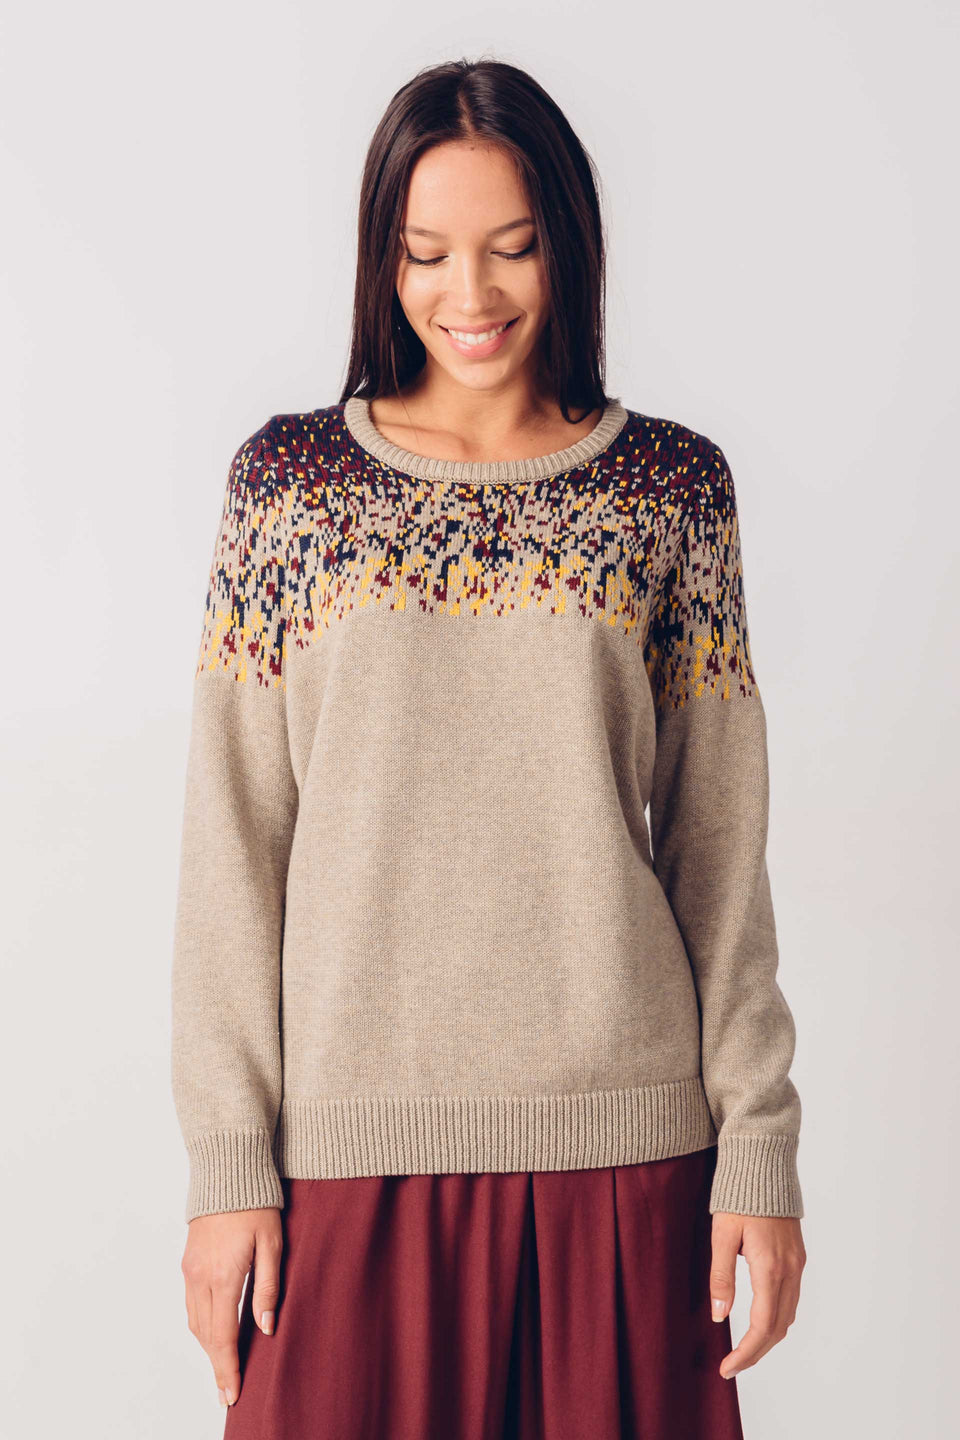 Iradi Sweater in Beige